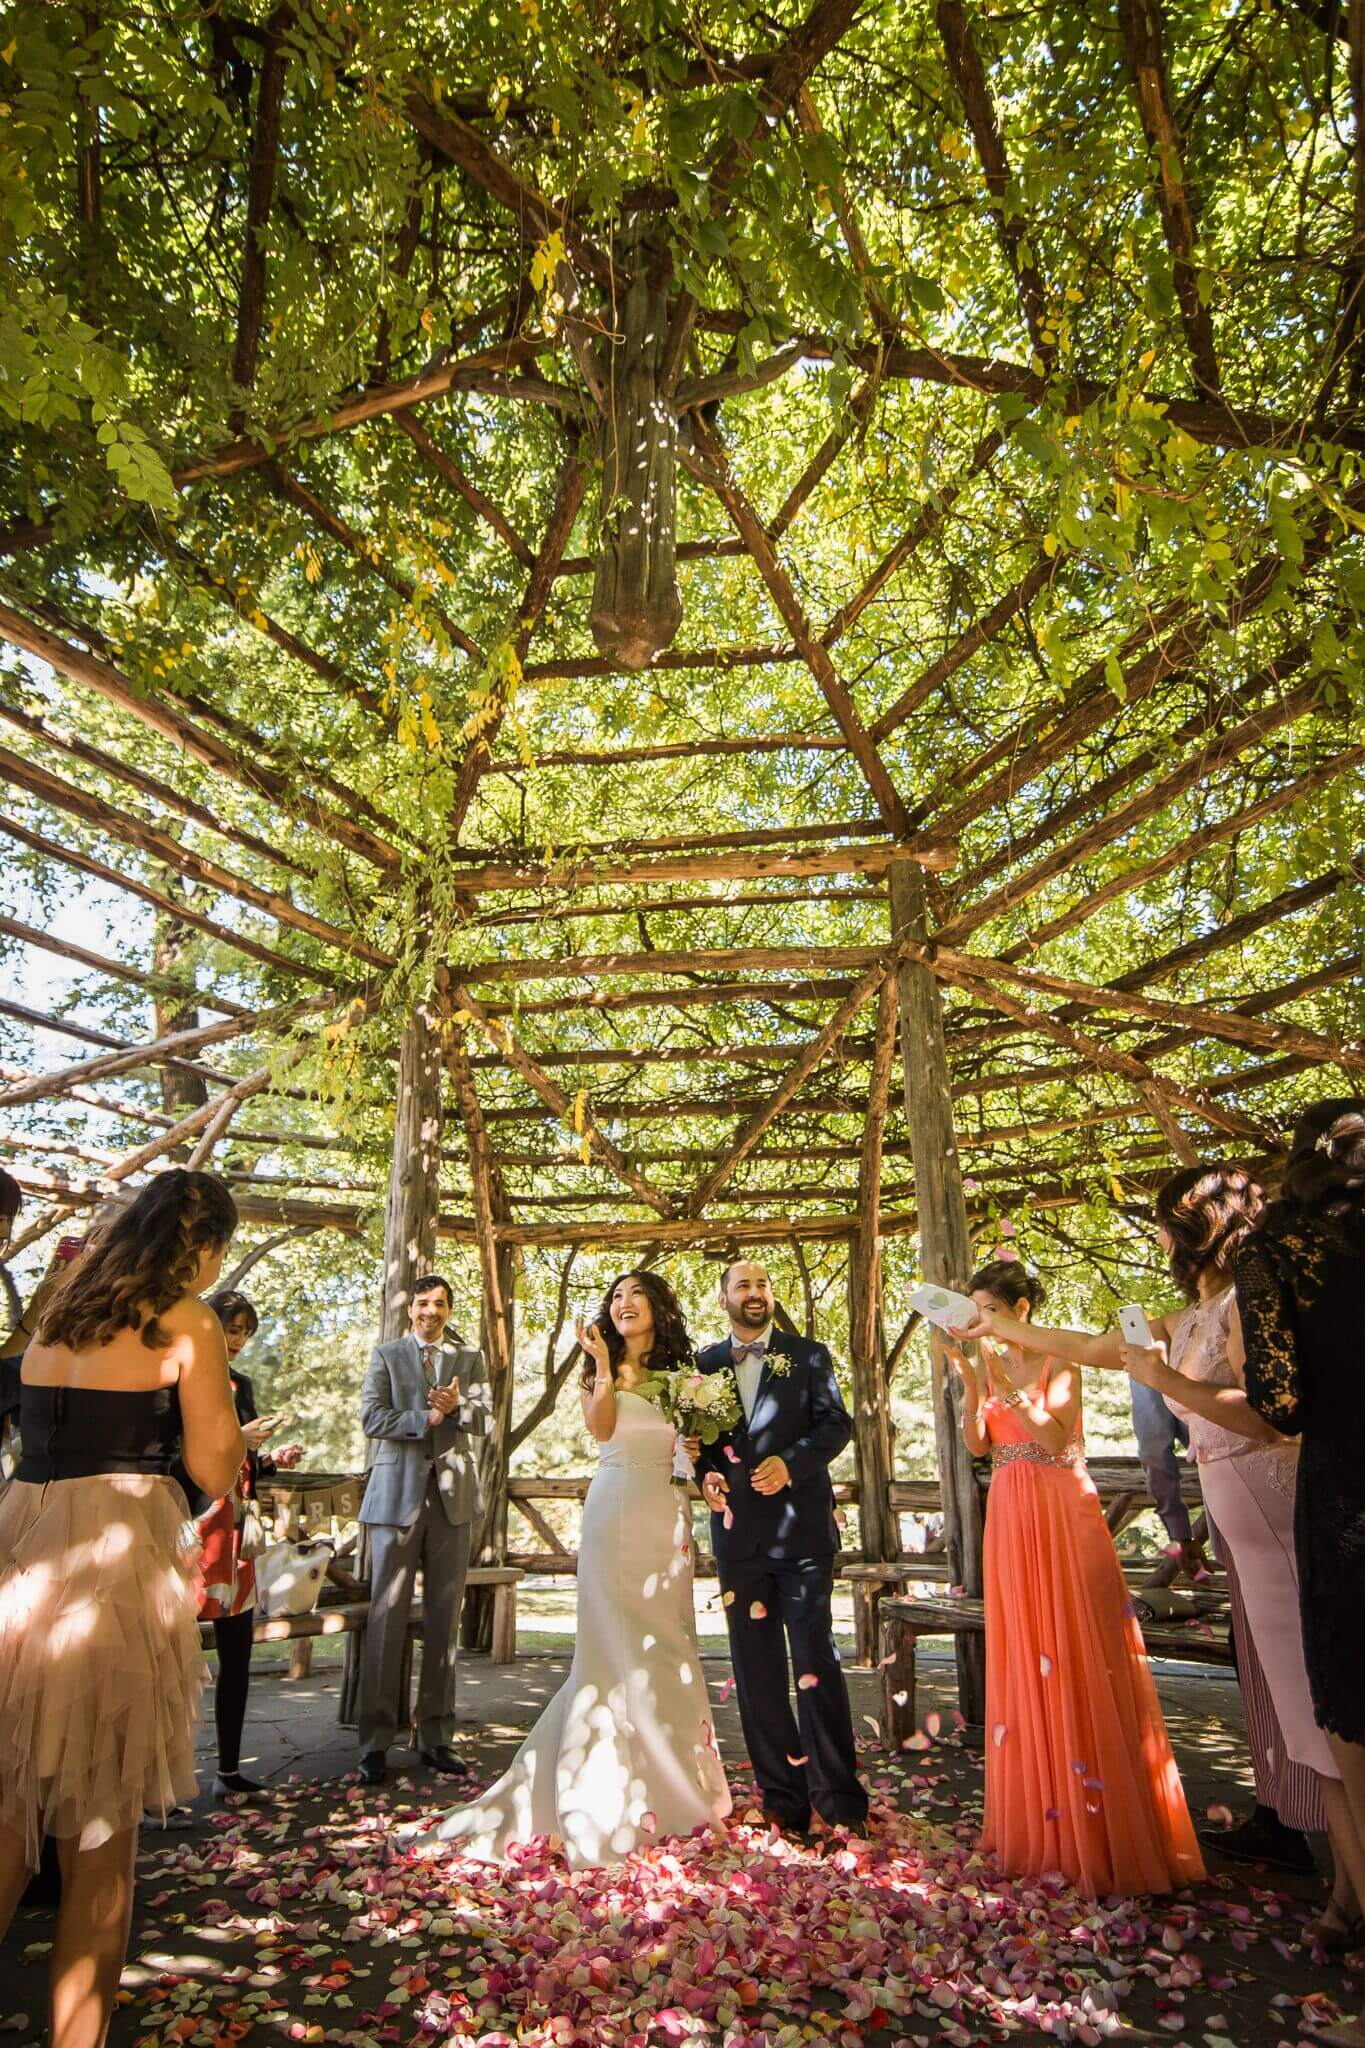 NYC Based Elopement-style Wedding Company, Wedding Packages NYC, Seeks to Hire Wedding Professionals As Demand Rises for Micro-weddings During Pandemic Times